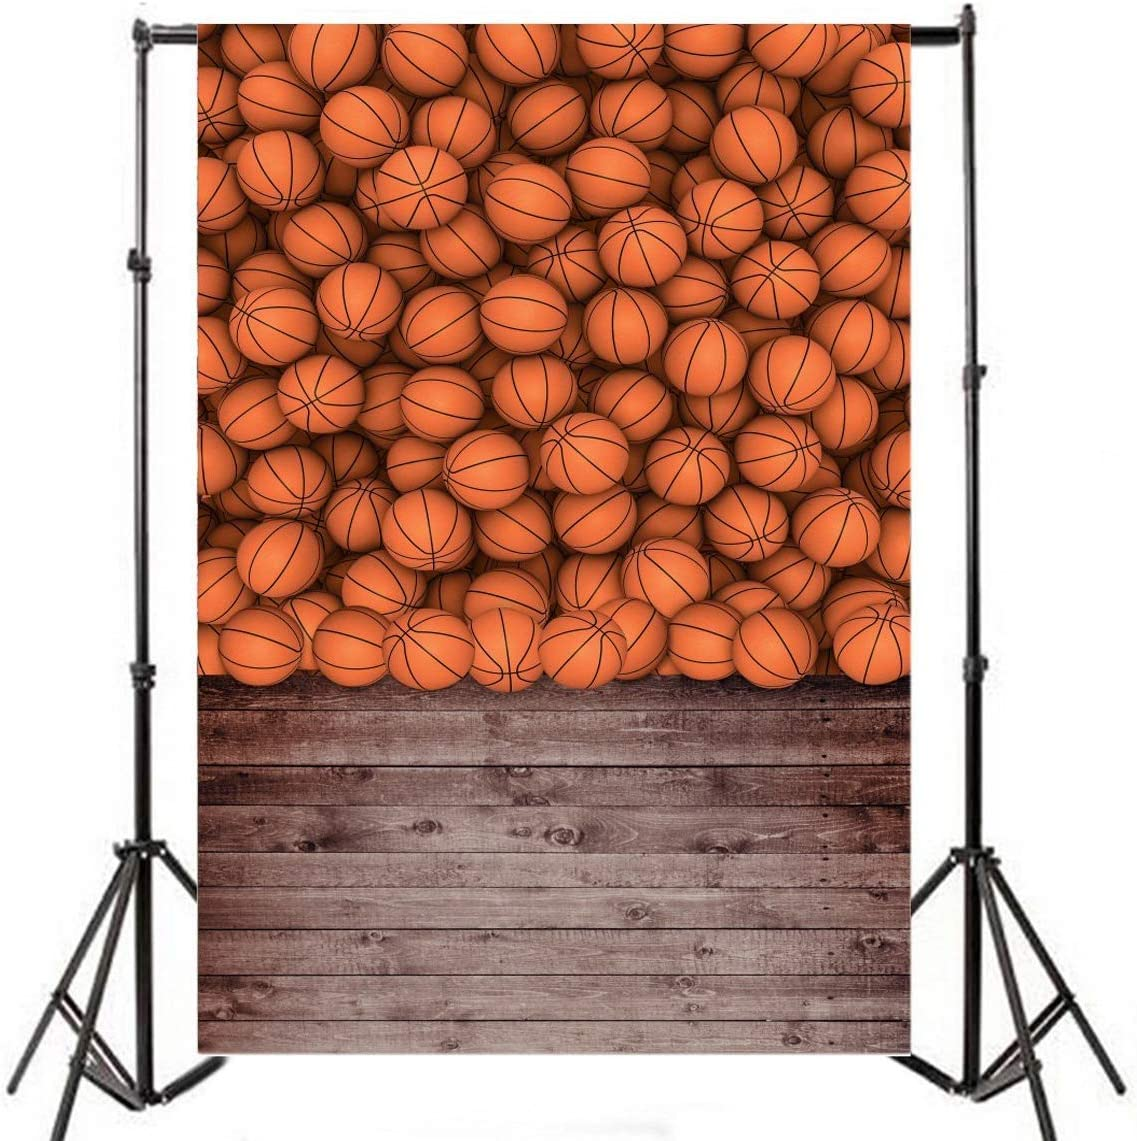 CdHBH 10x12ft Brown Wood Floor and Basketball Style Portrait Clothing Photo Photography Background Cloth Photo Studio Photography Photo Photography Props Wallpaper Home Decoration